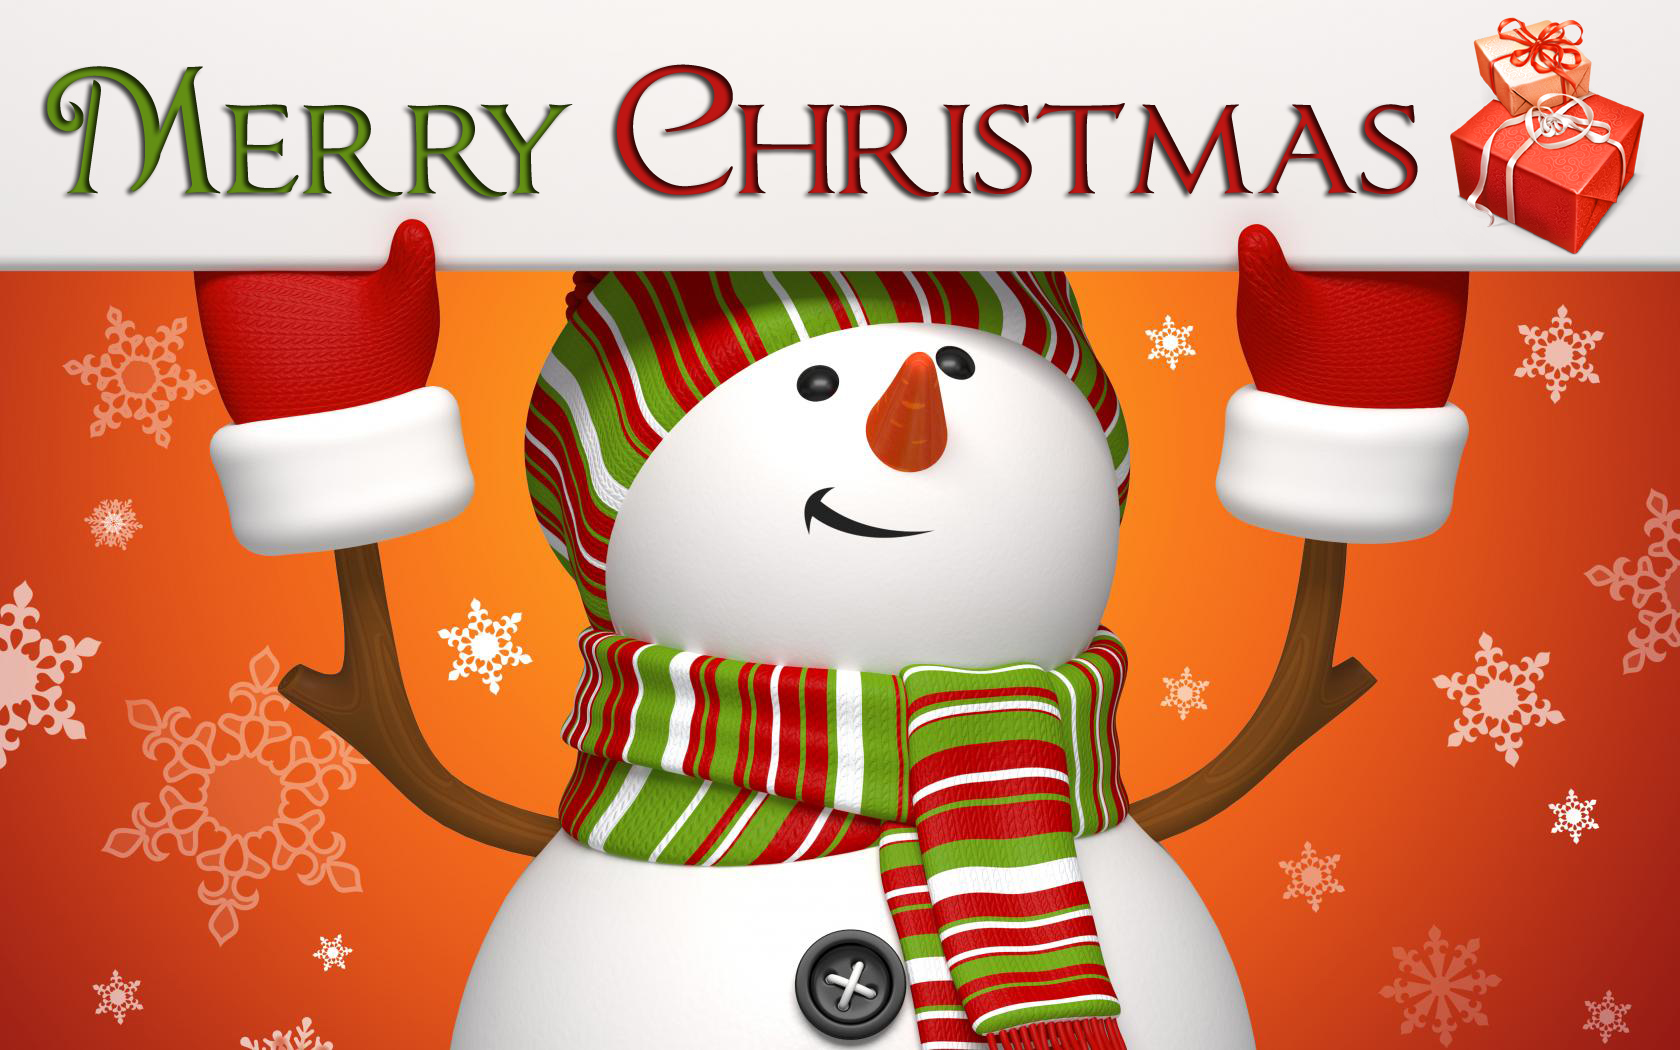 Merry Christmas Images, Wallpapers, Photos and Greetings 2015